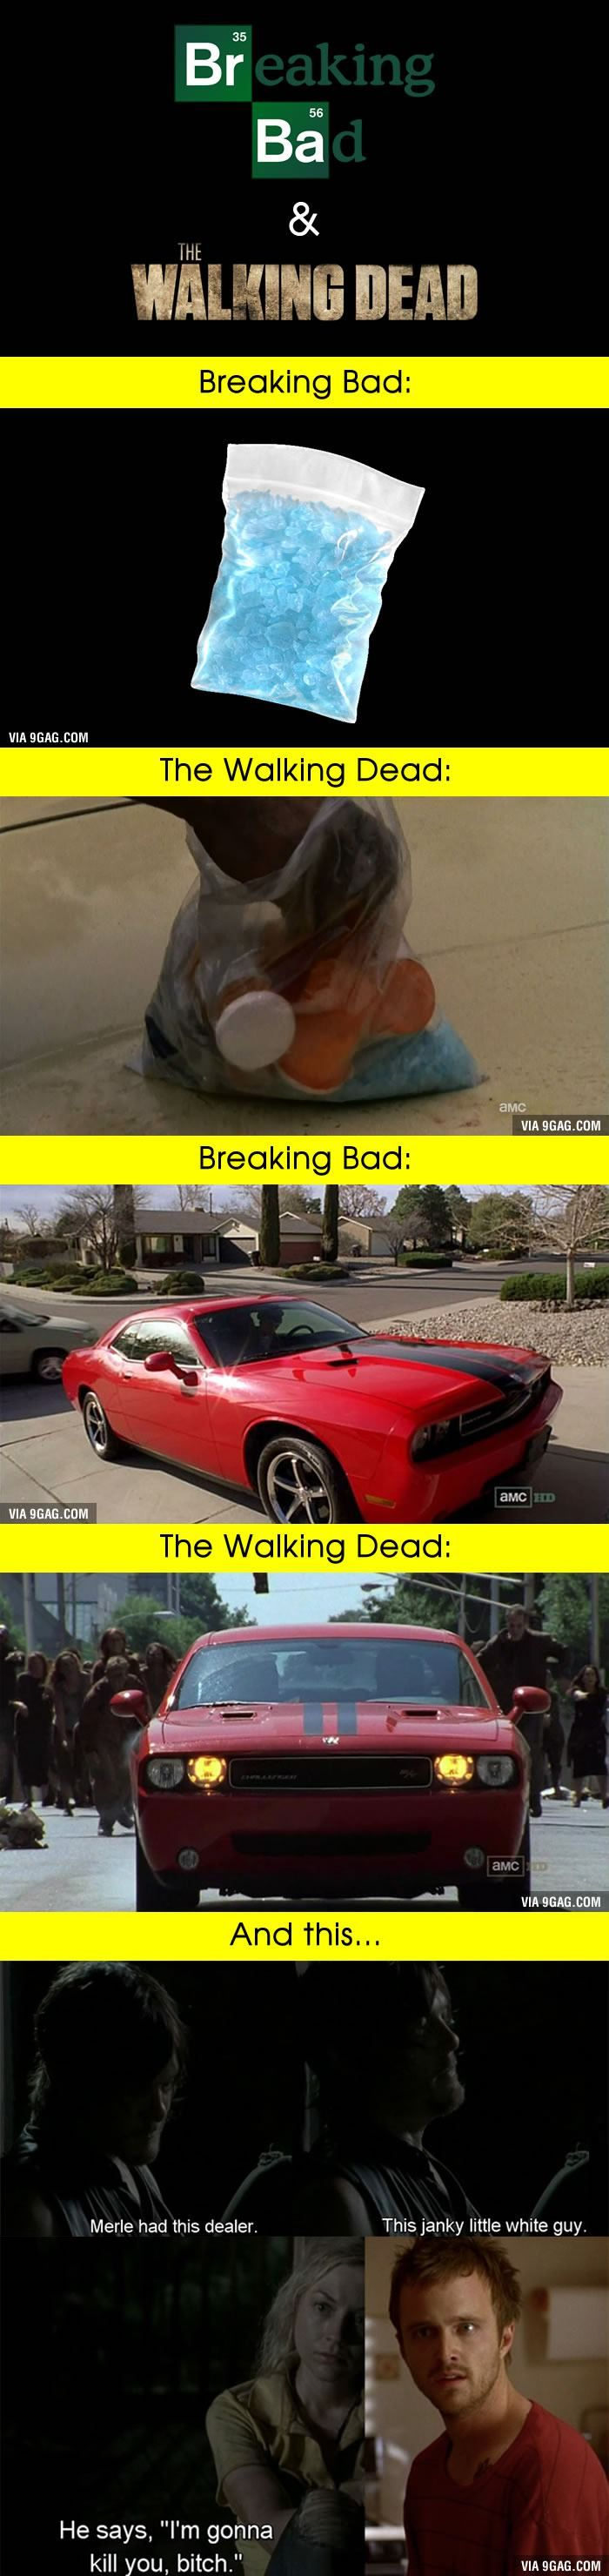 "This 100% Proves That ""Breaking Bad"" & 'The Walking Dead' Are Related"